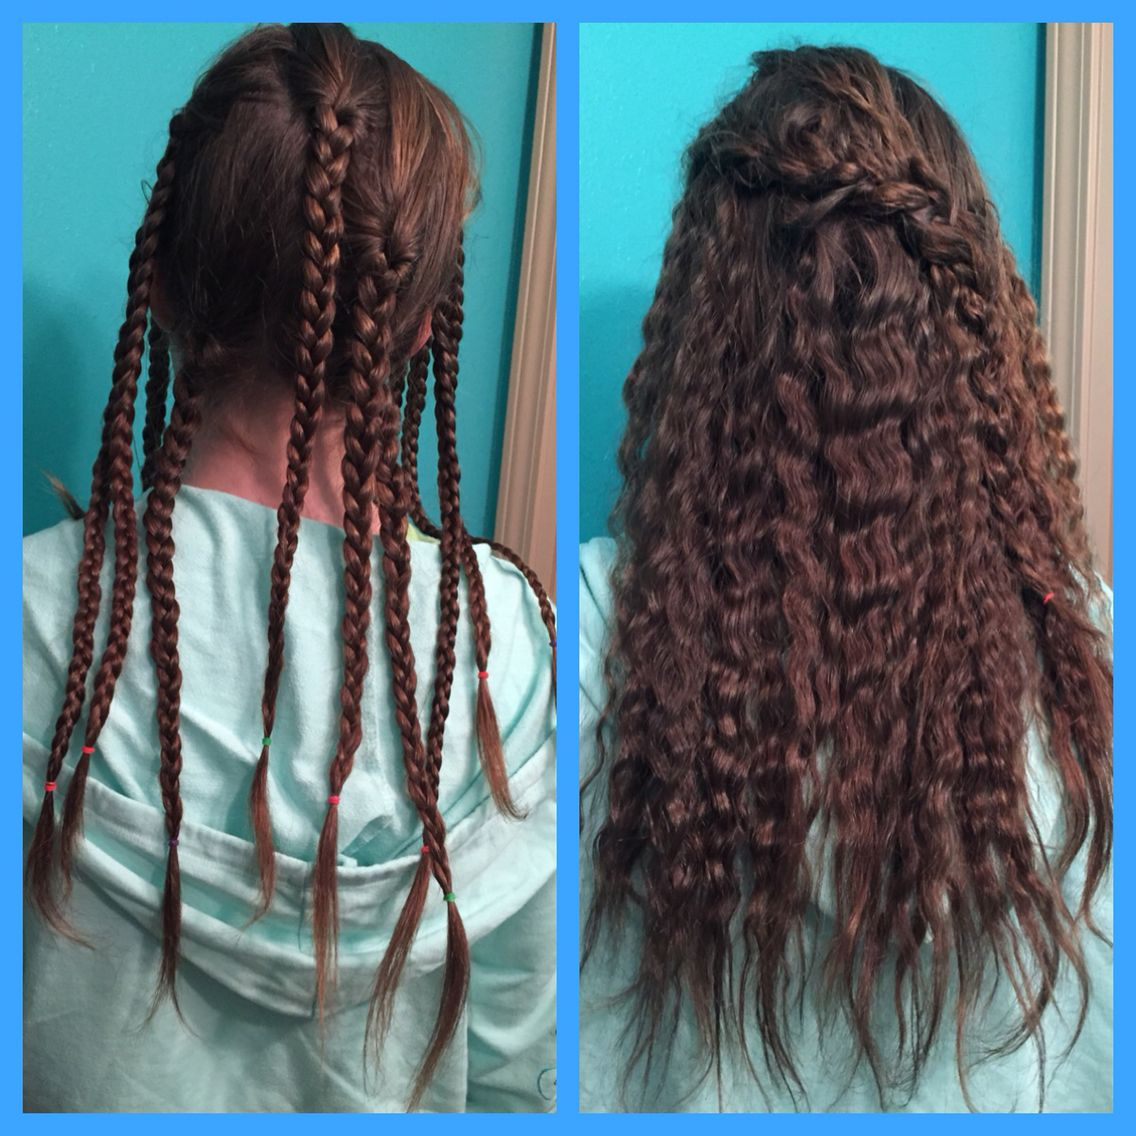 How To Crimp Your Hair Without A Crimping Iron Put All Of Your Hair In Little Braids Before You Go To B Crimped Hair Tutorial Hair Styles Overnight Hairstyles